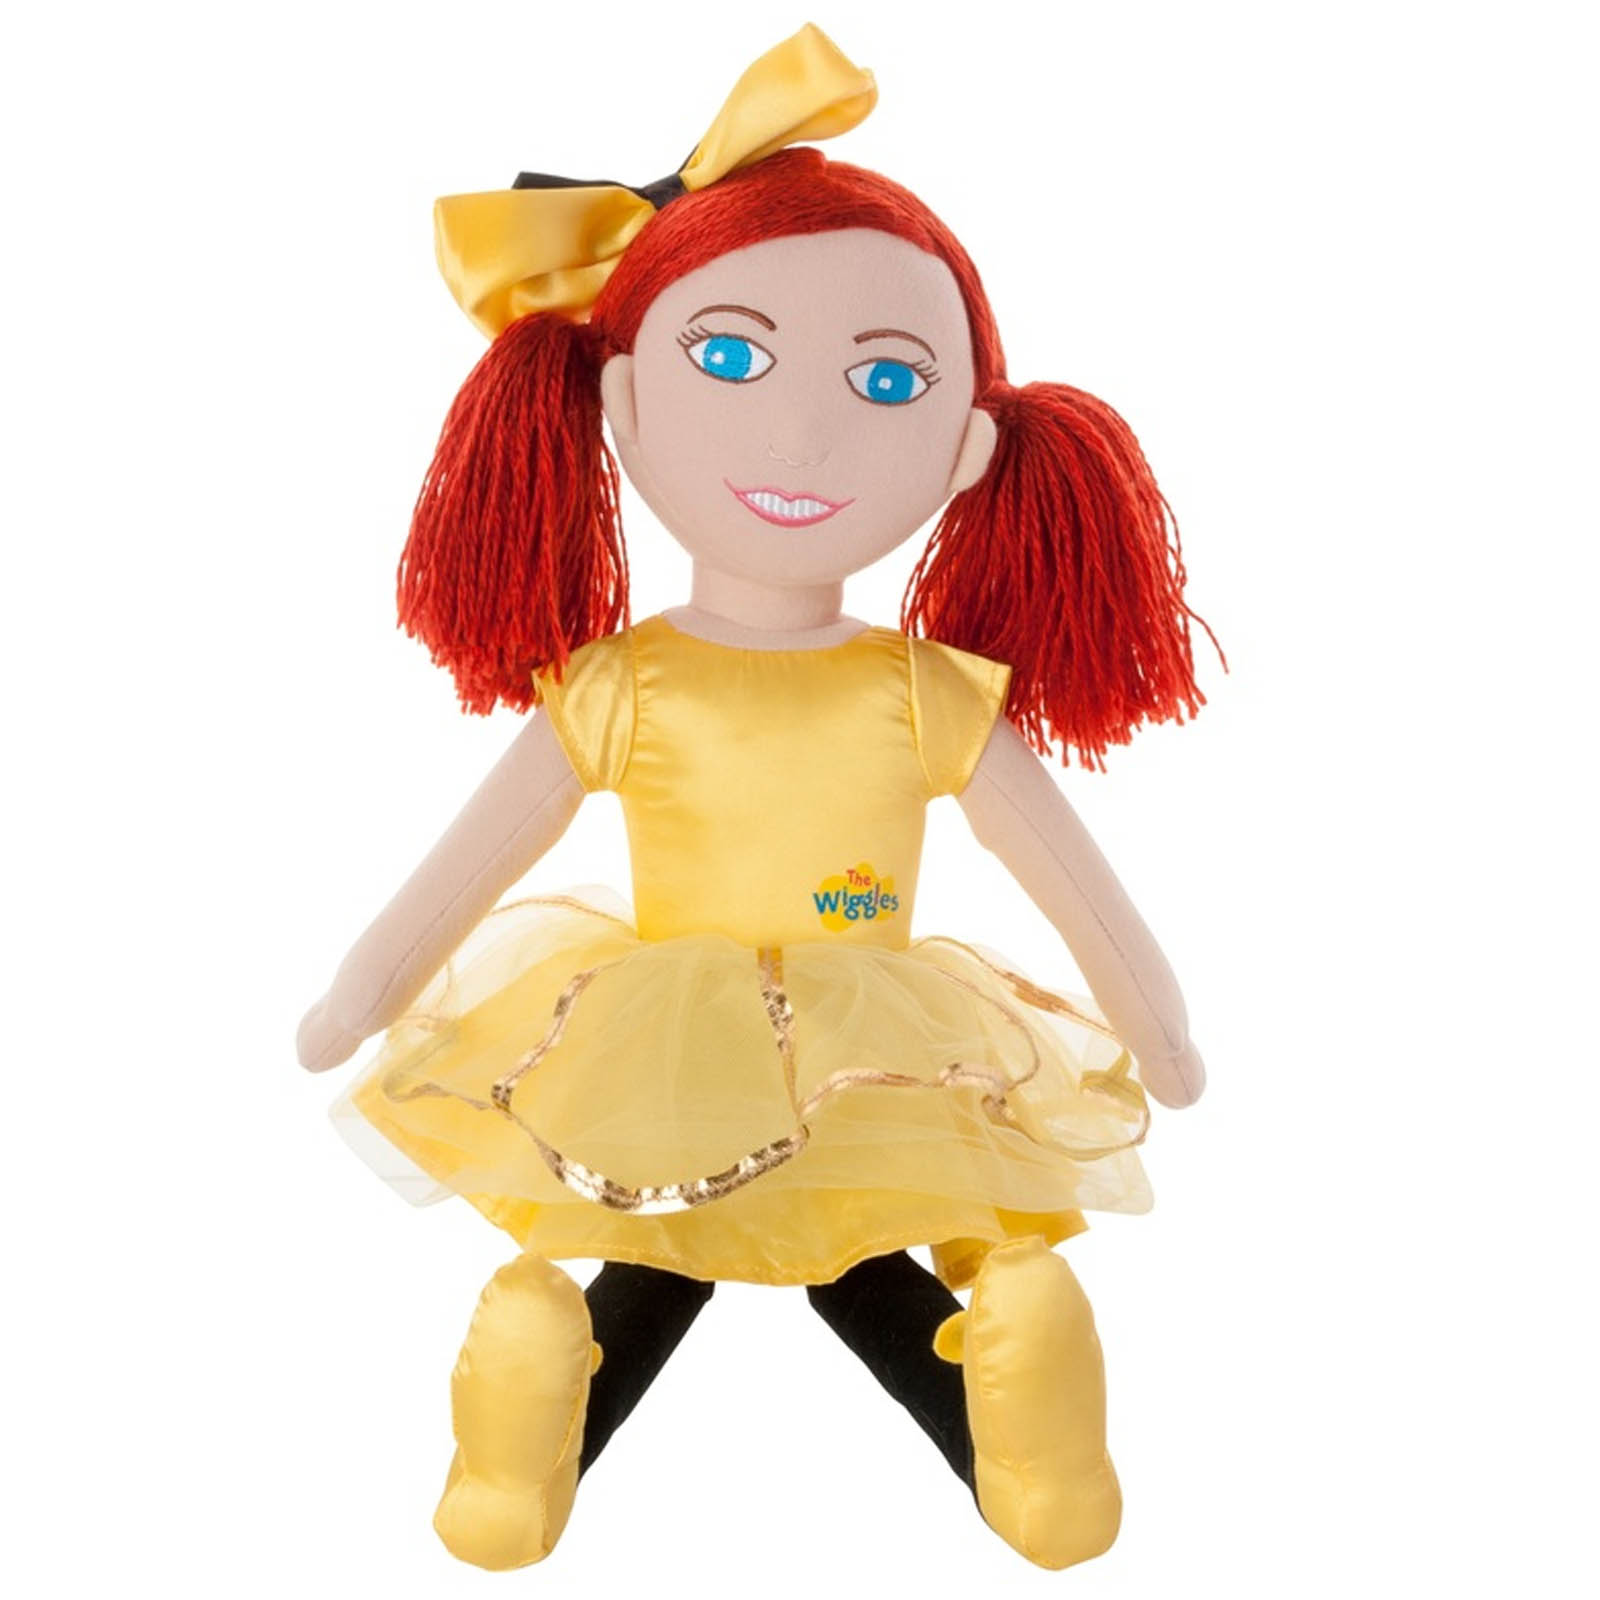 The Wiggles Emma Large Plush Ballerina Cuddle Rag Doll 50cm